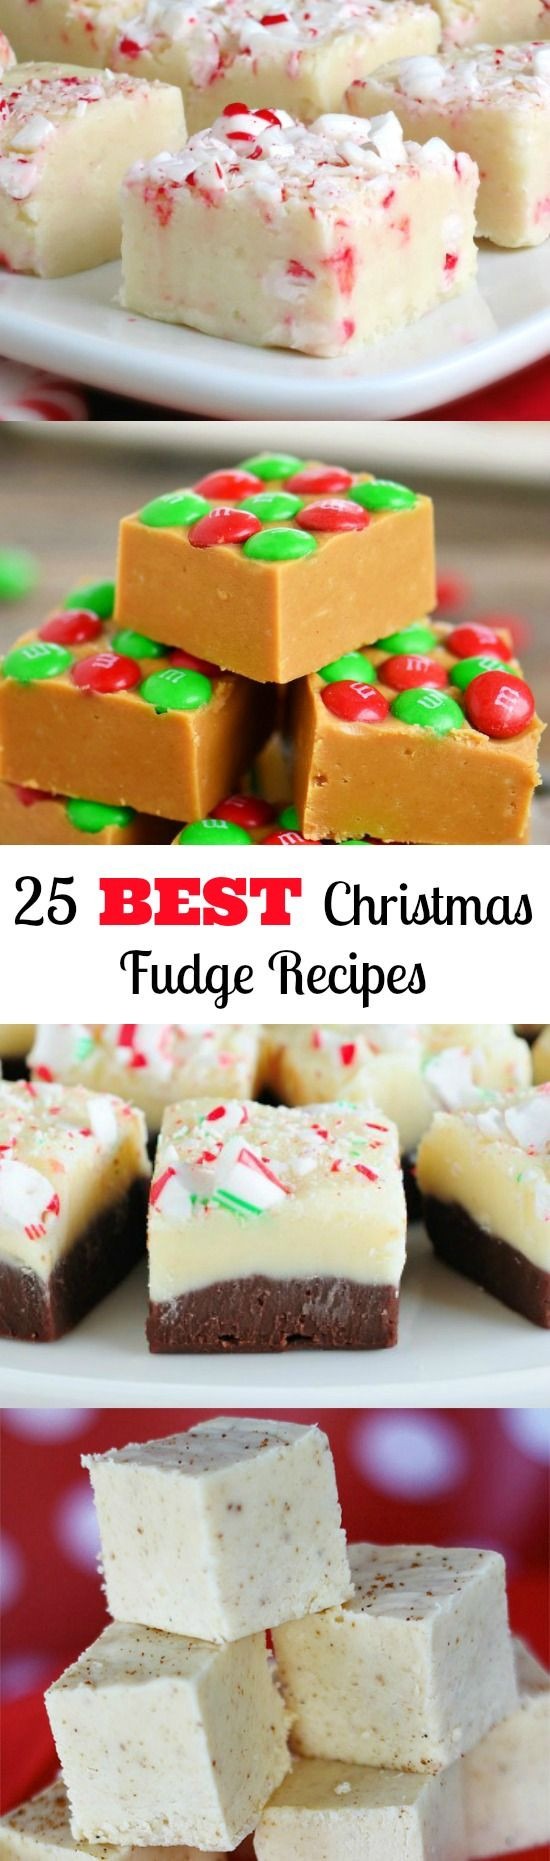 Best Fudge Recipes For Christmas  17 Best ideas about Christmas Goo s on Pinterest